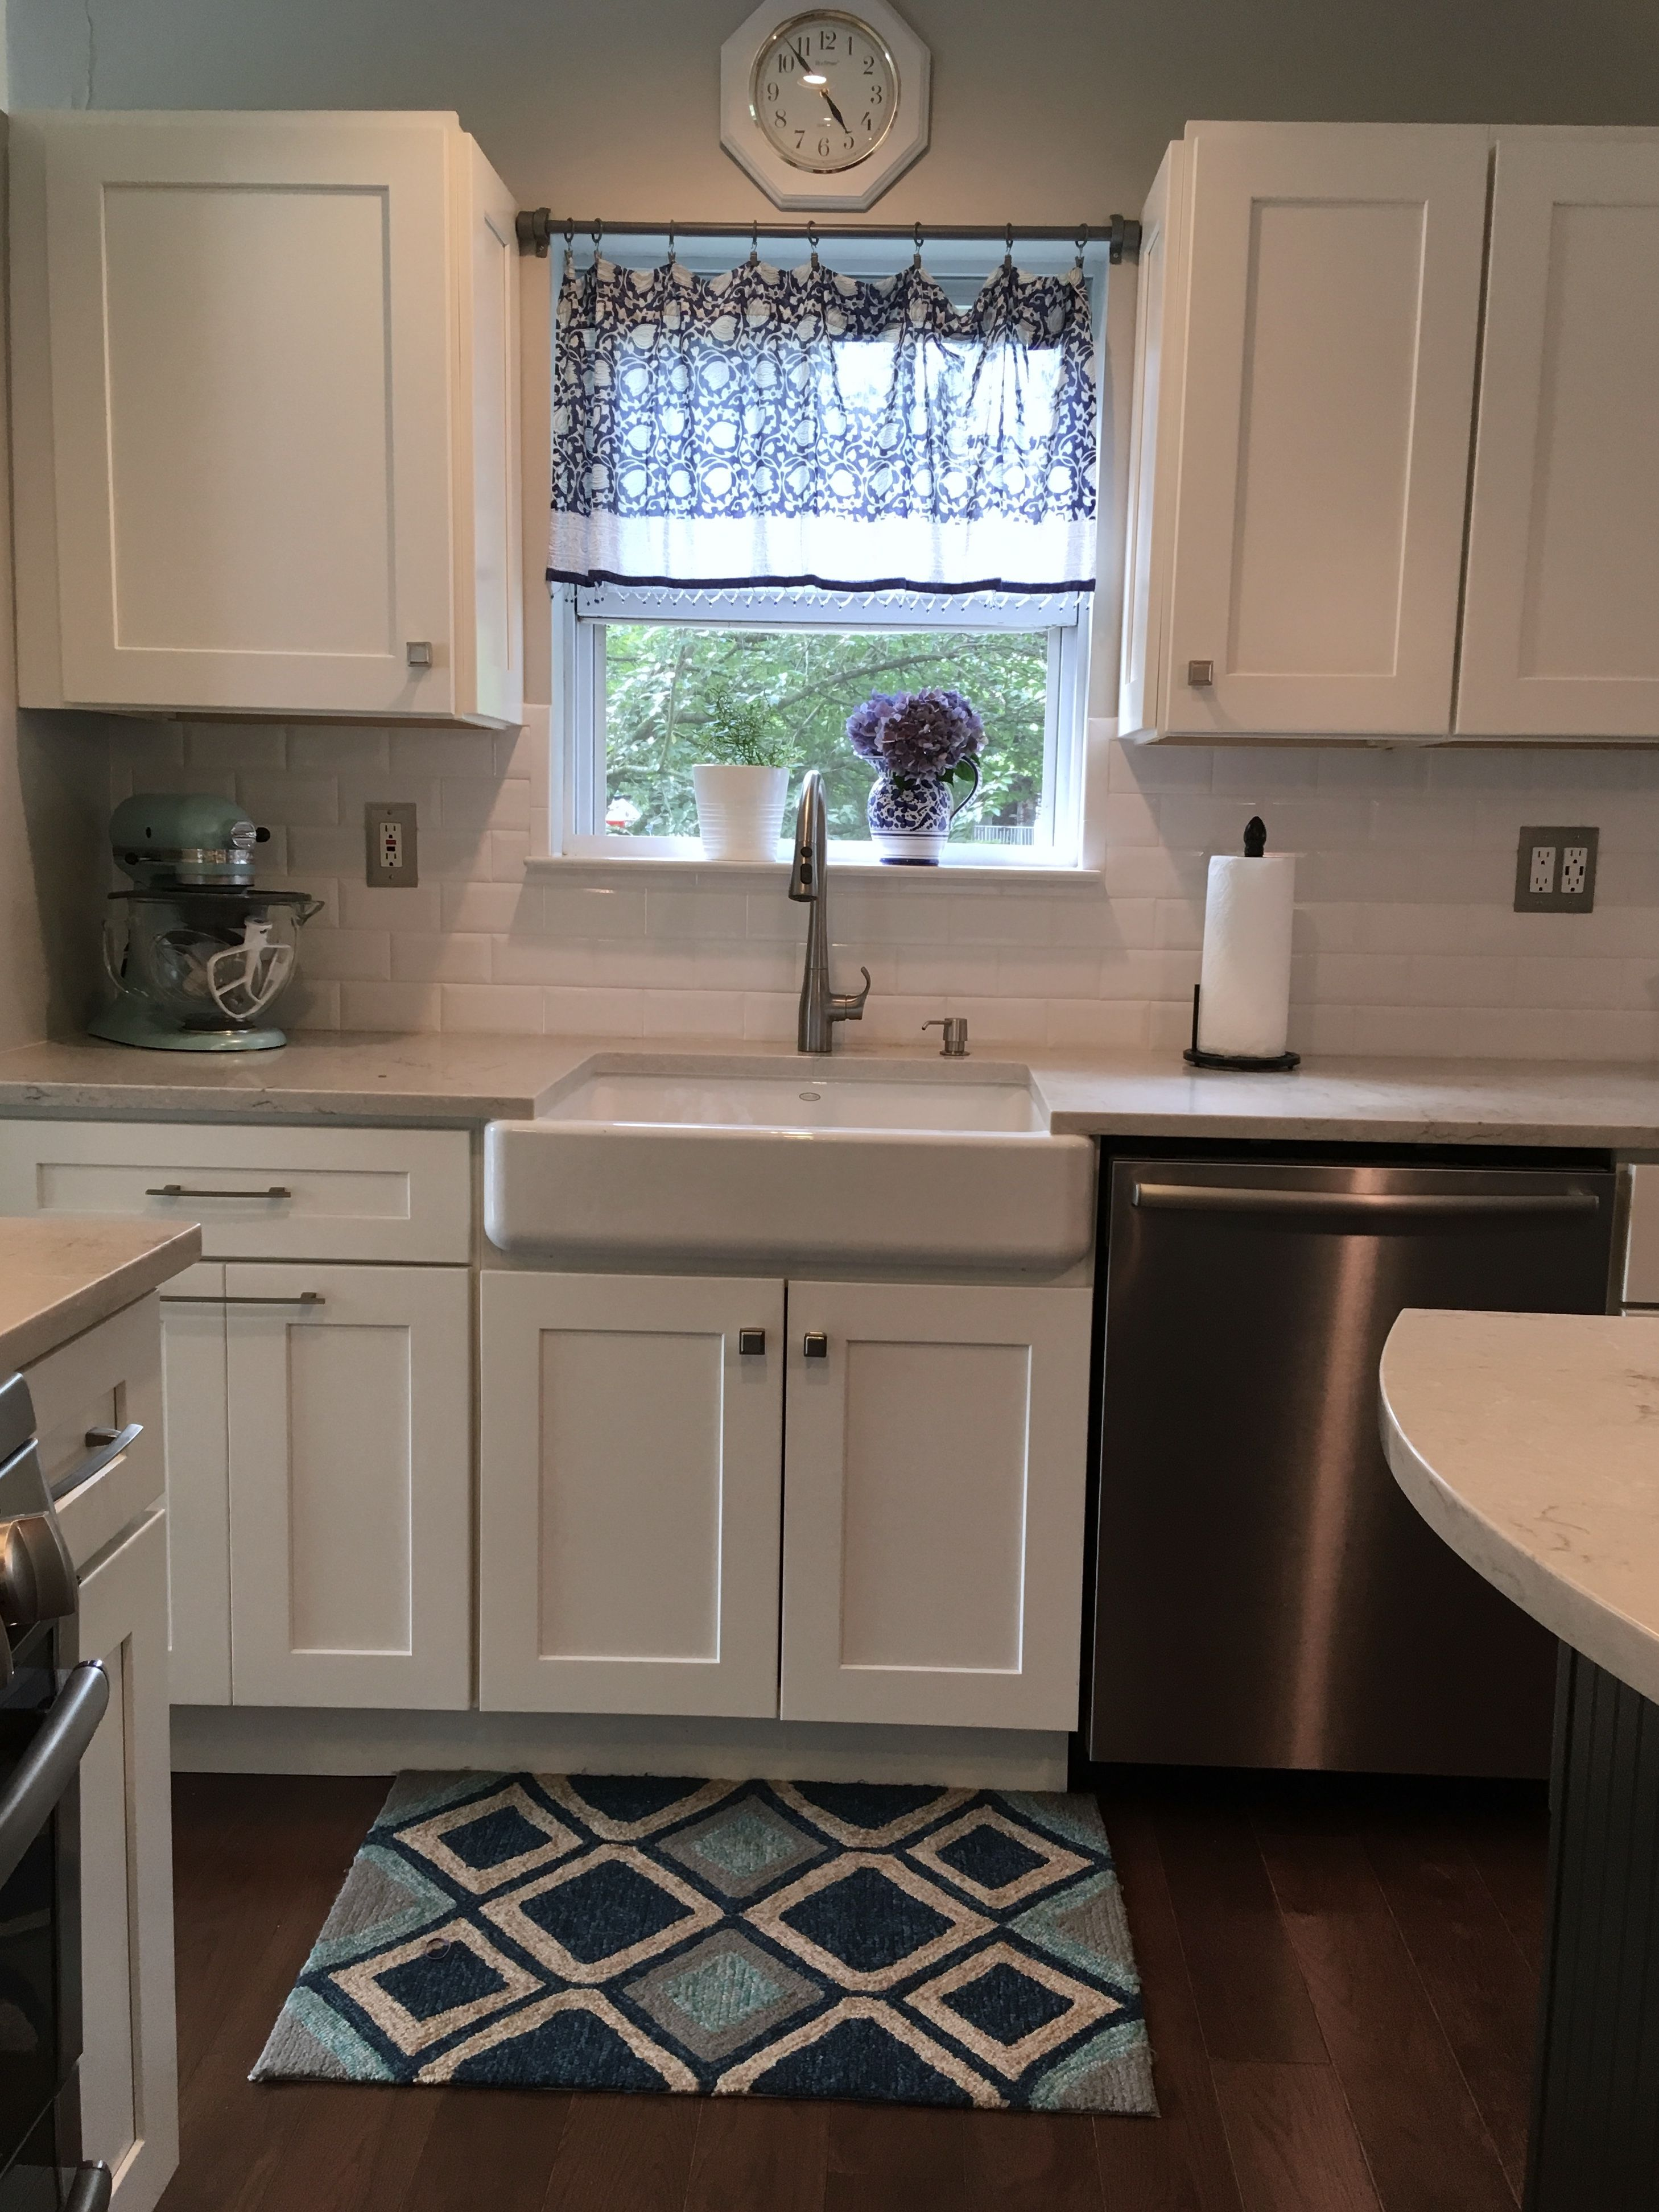 I Dont Like How Close These Cabinets Are To The Window Kitchen Redo Kitchen Decor Kitchen